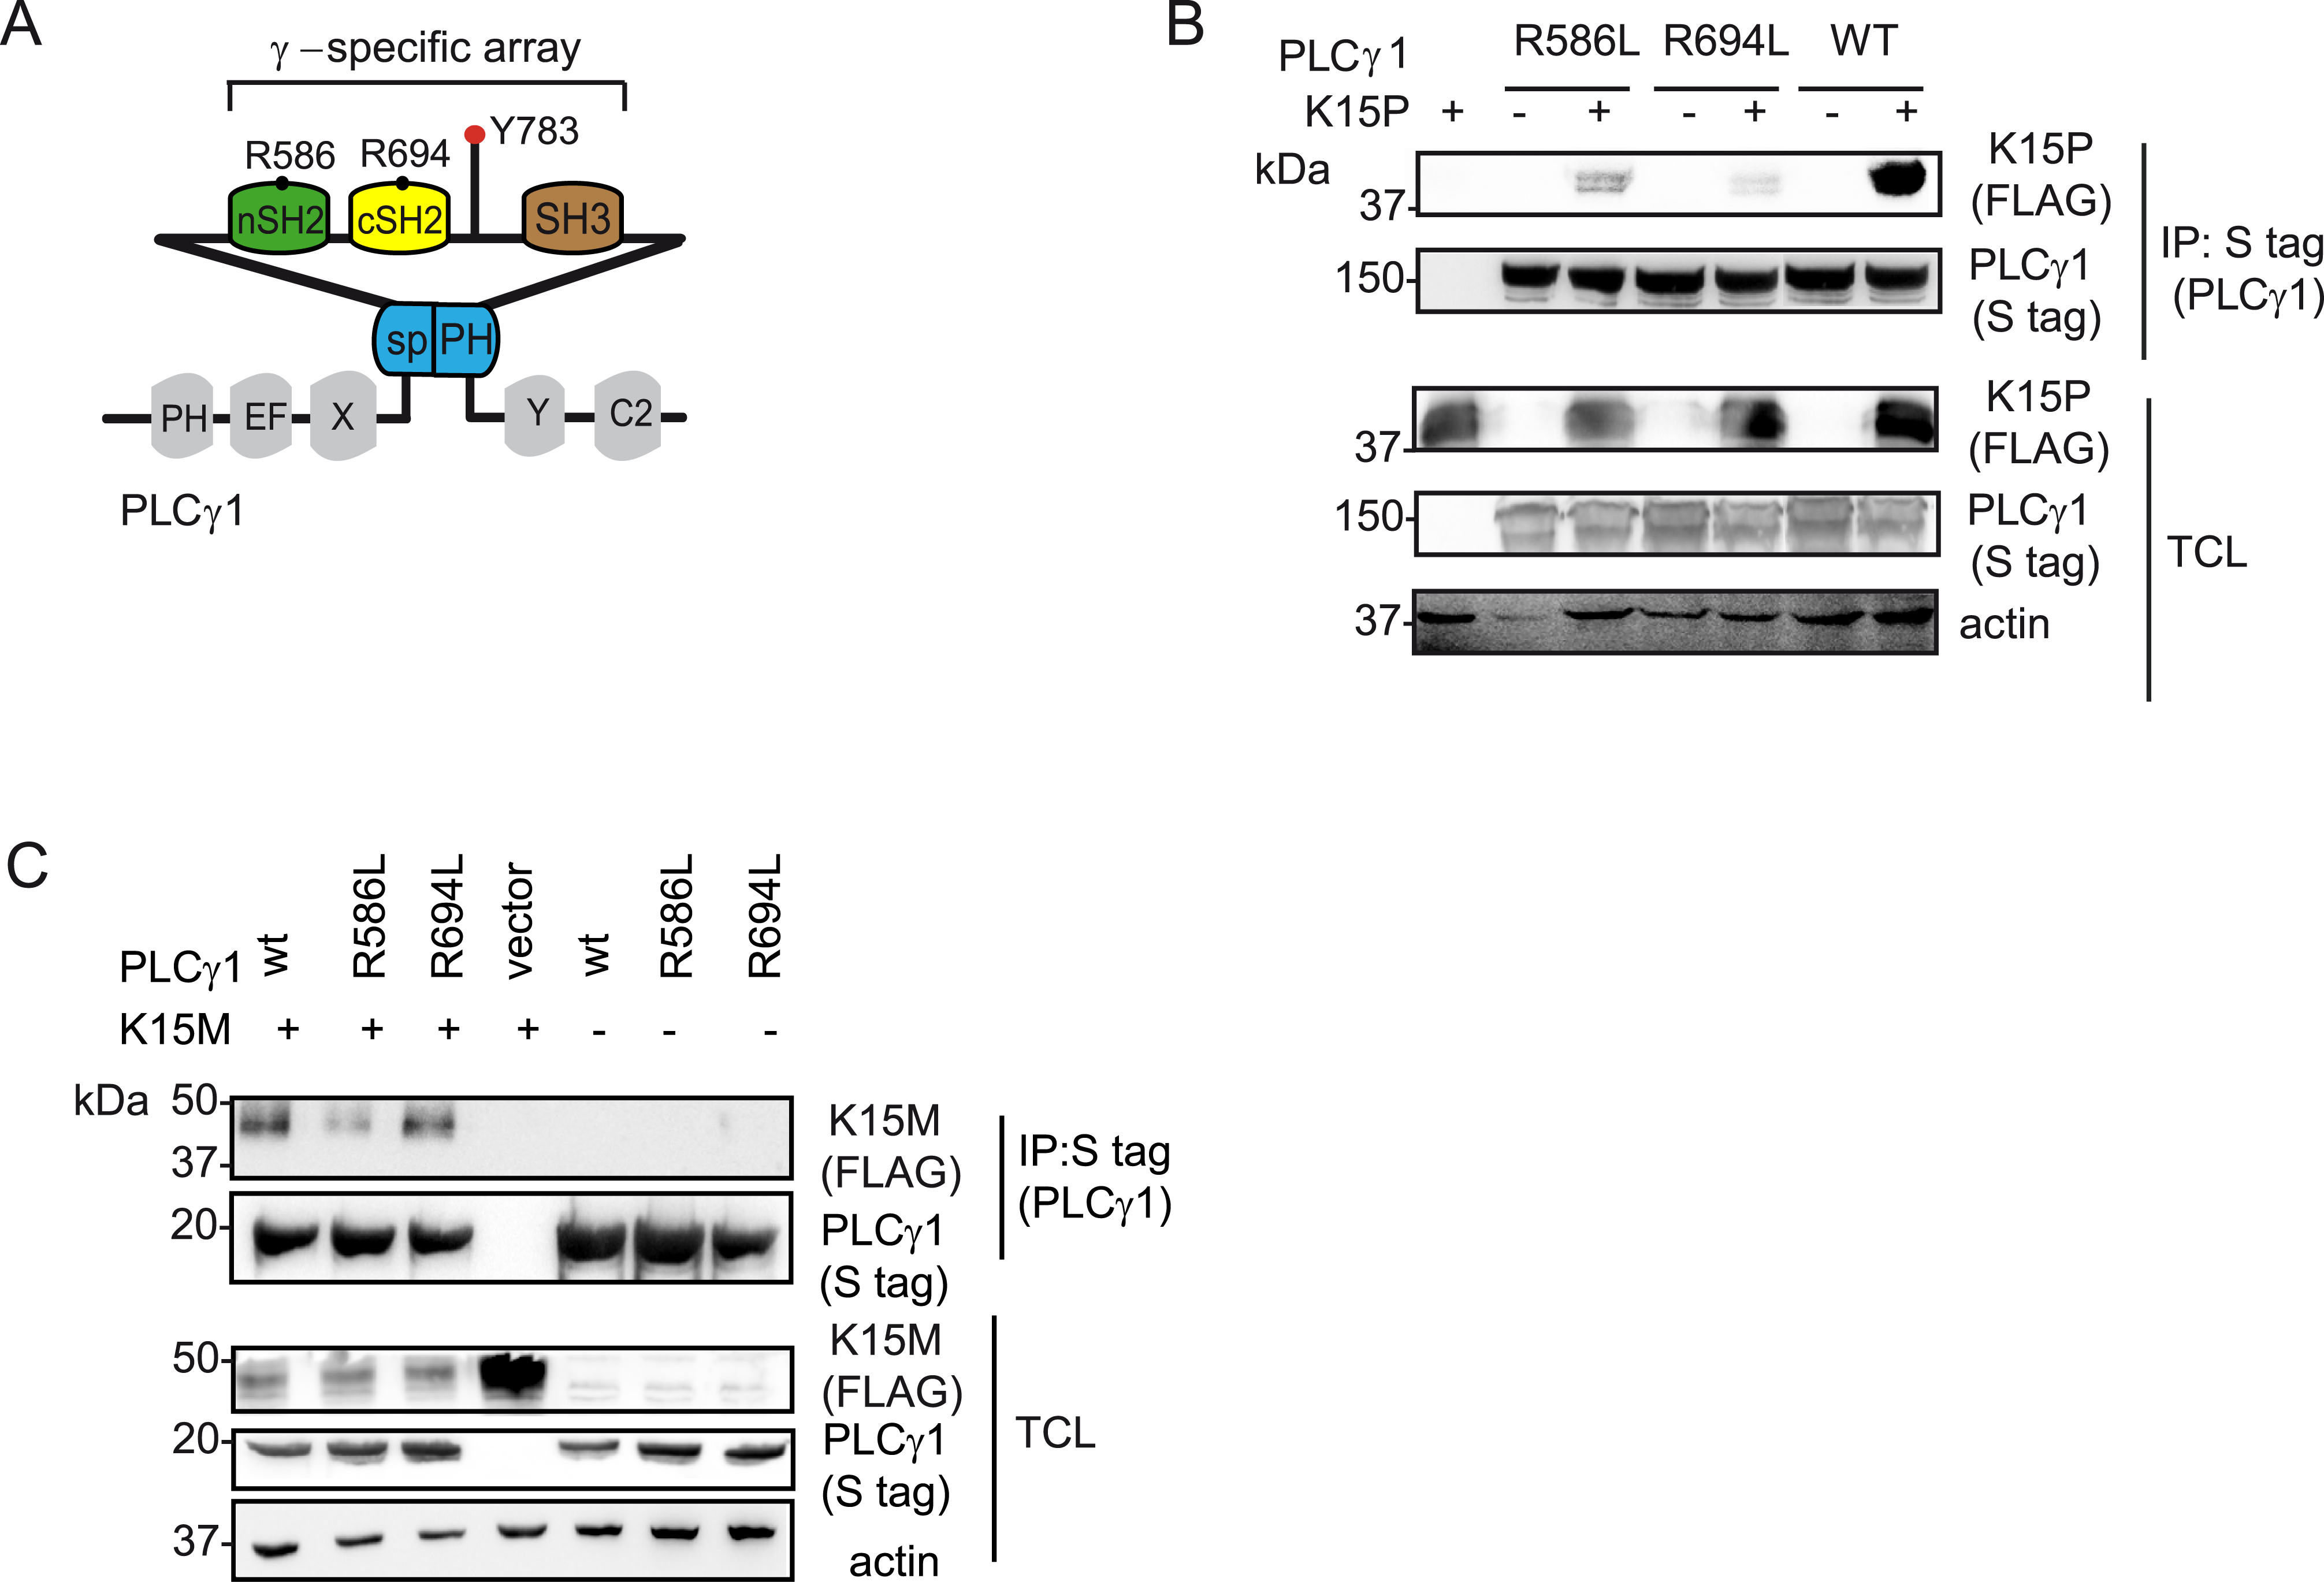 PLCγ1 SH2 domains are important for the binding to K15P and M.